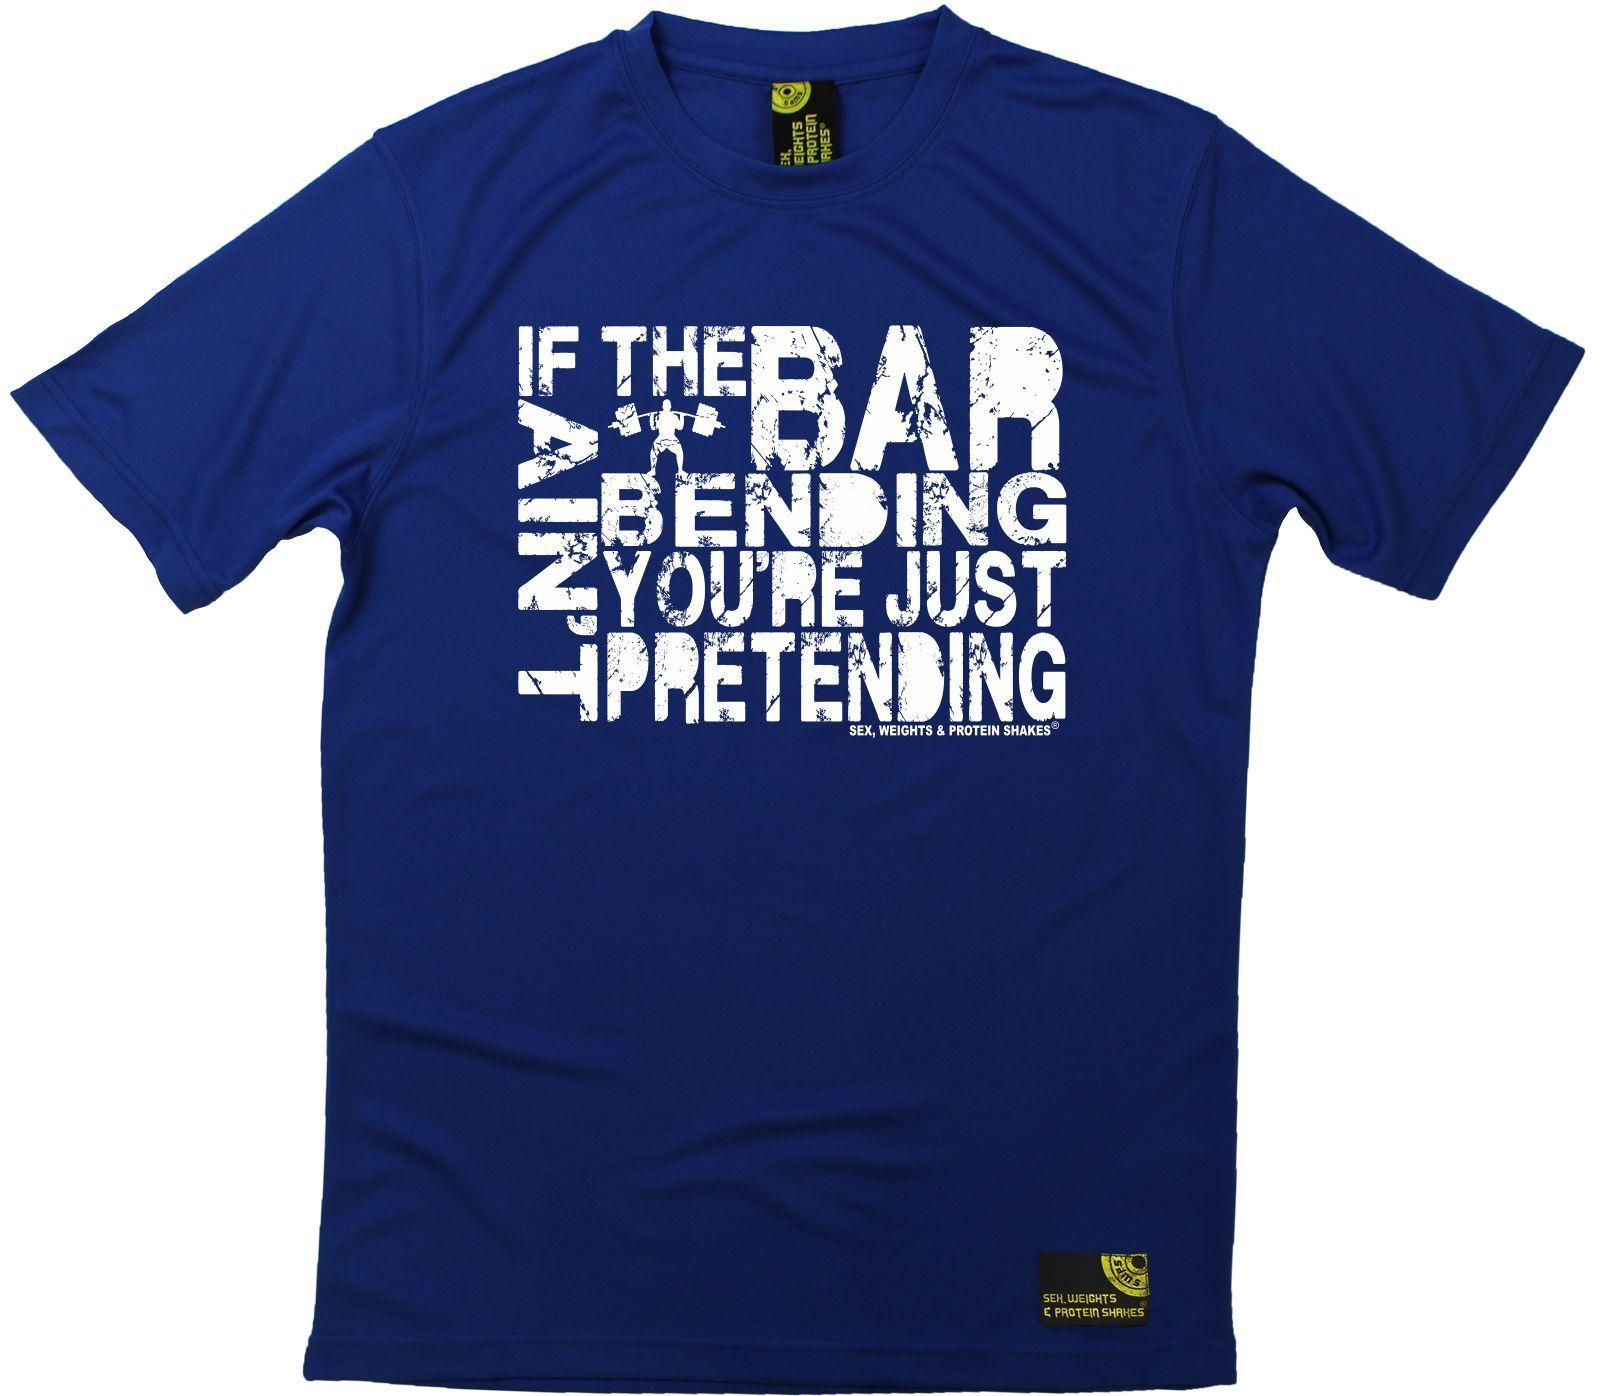 Sex Weights and Protein Shakes If The Bar Aint Bending Dry Fit Sports  T-SHIRT